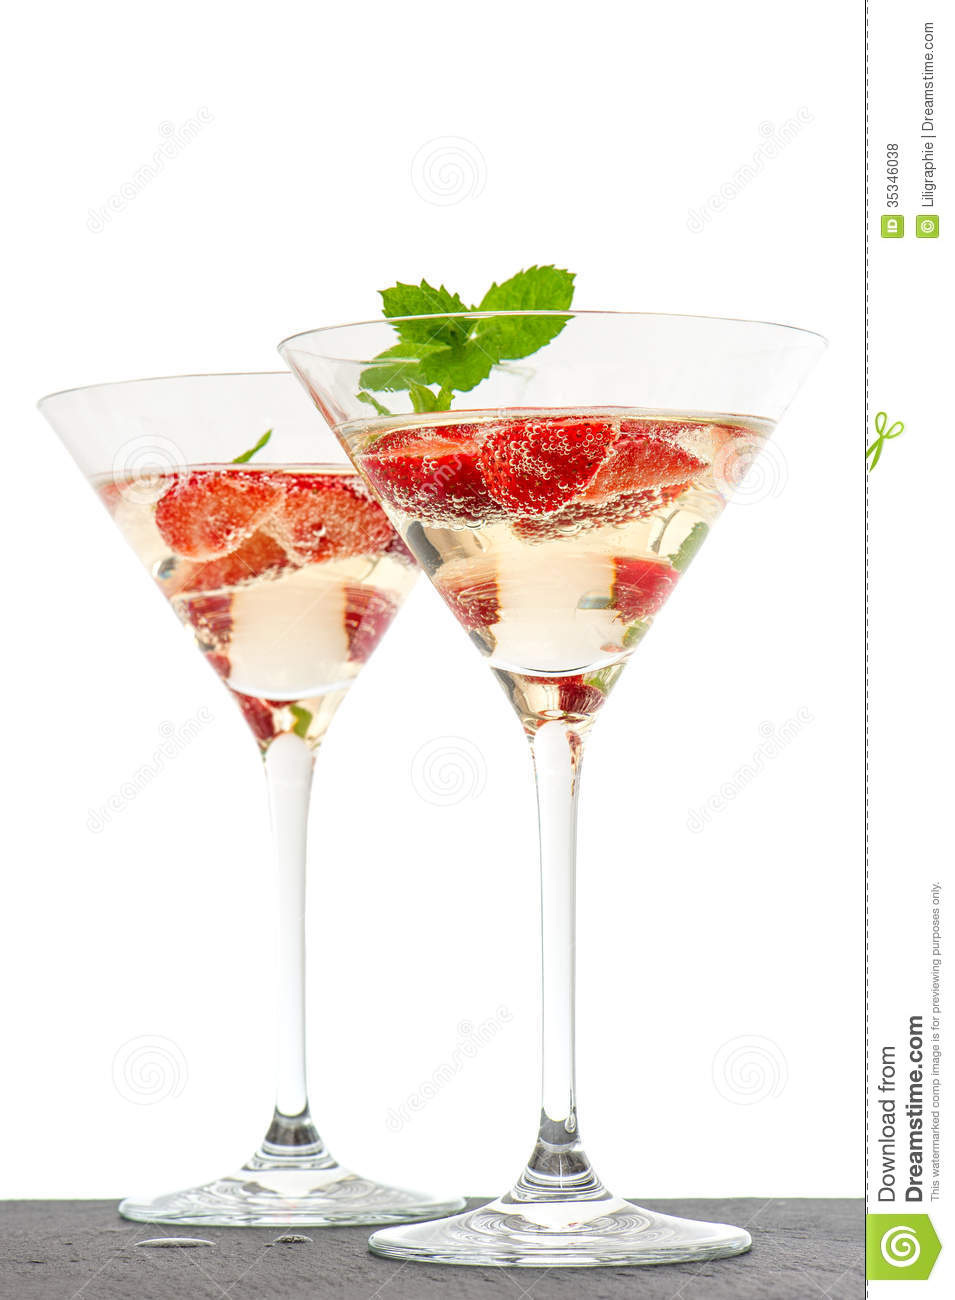 strawberry cocktail with berry in martini glass isolated on whit royalty free stock photos